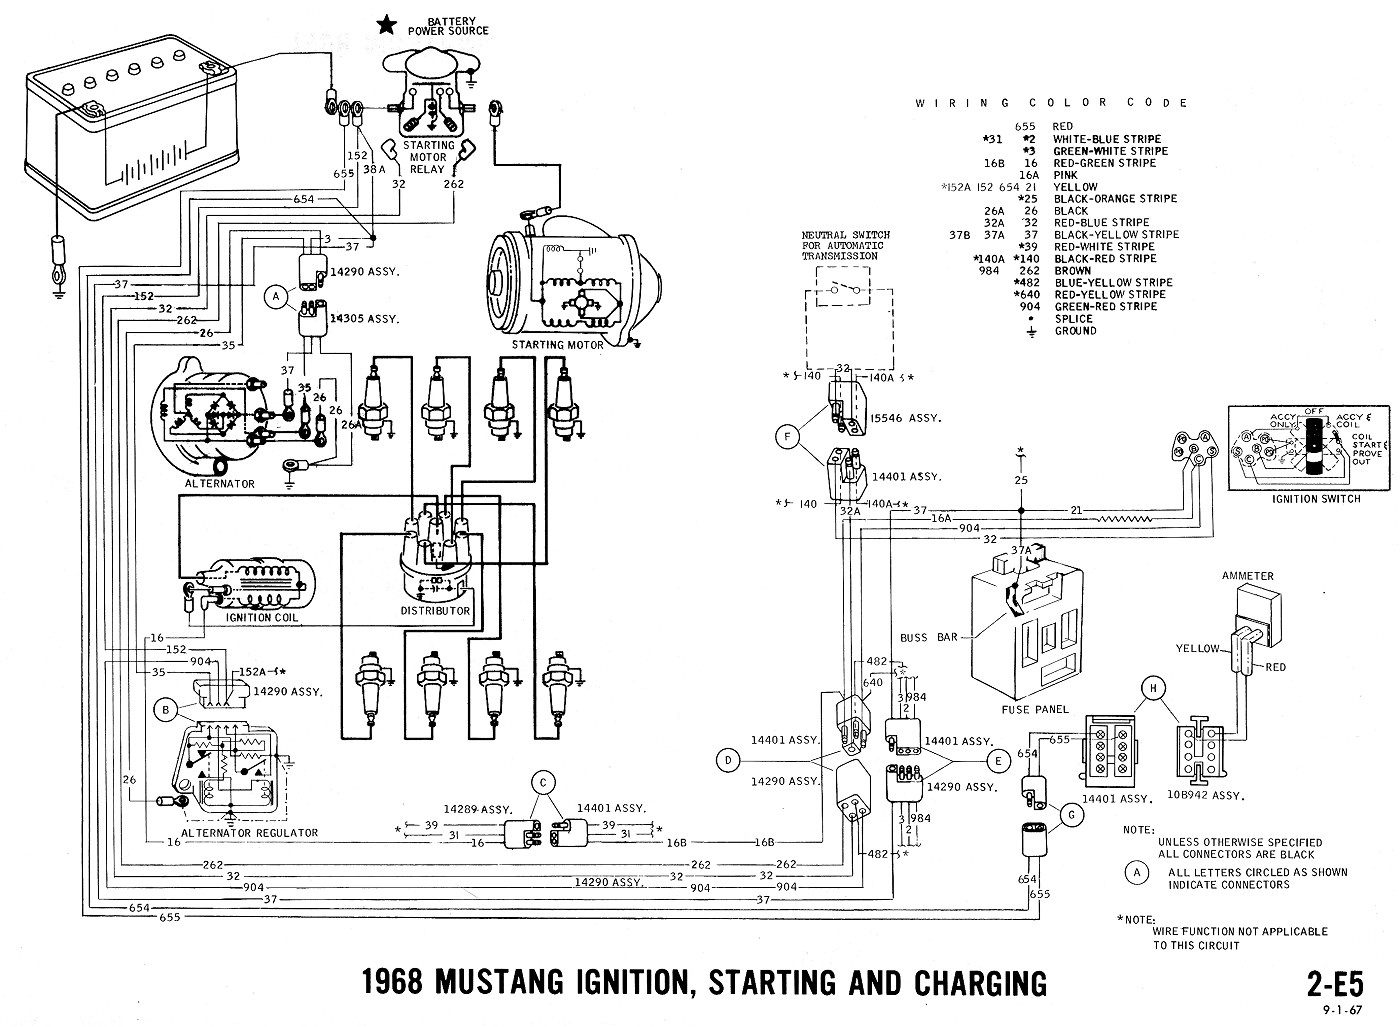 E5 1968 mustang wiring diagrams evolving software ford mustang wiring diagram at arjmand.co